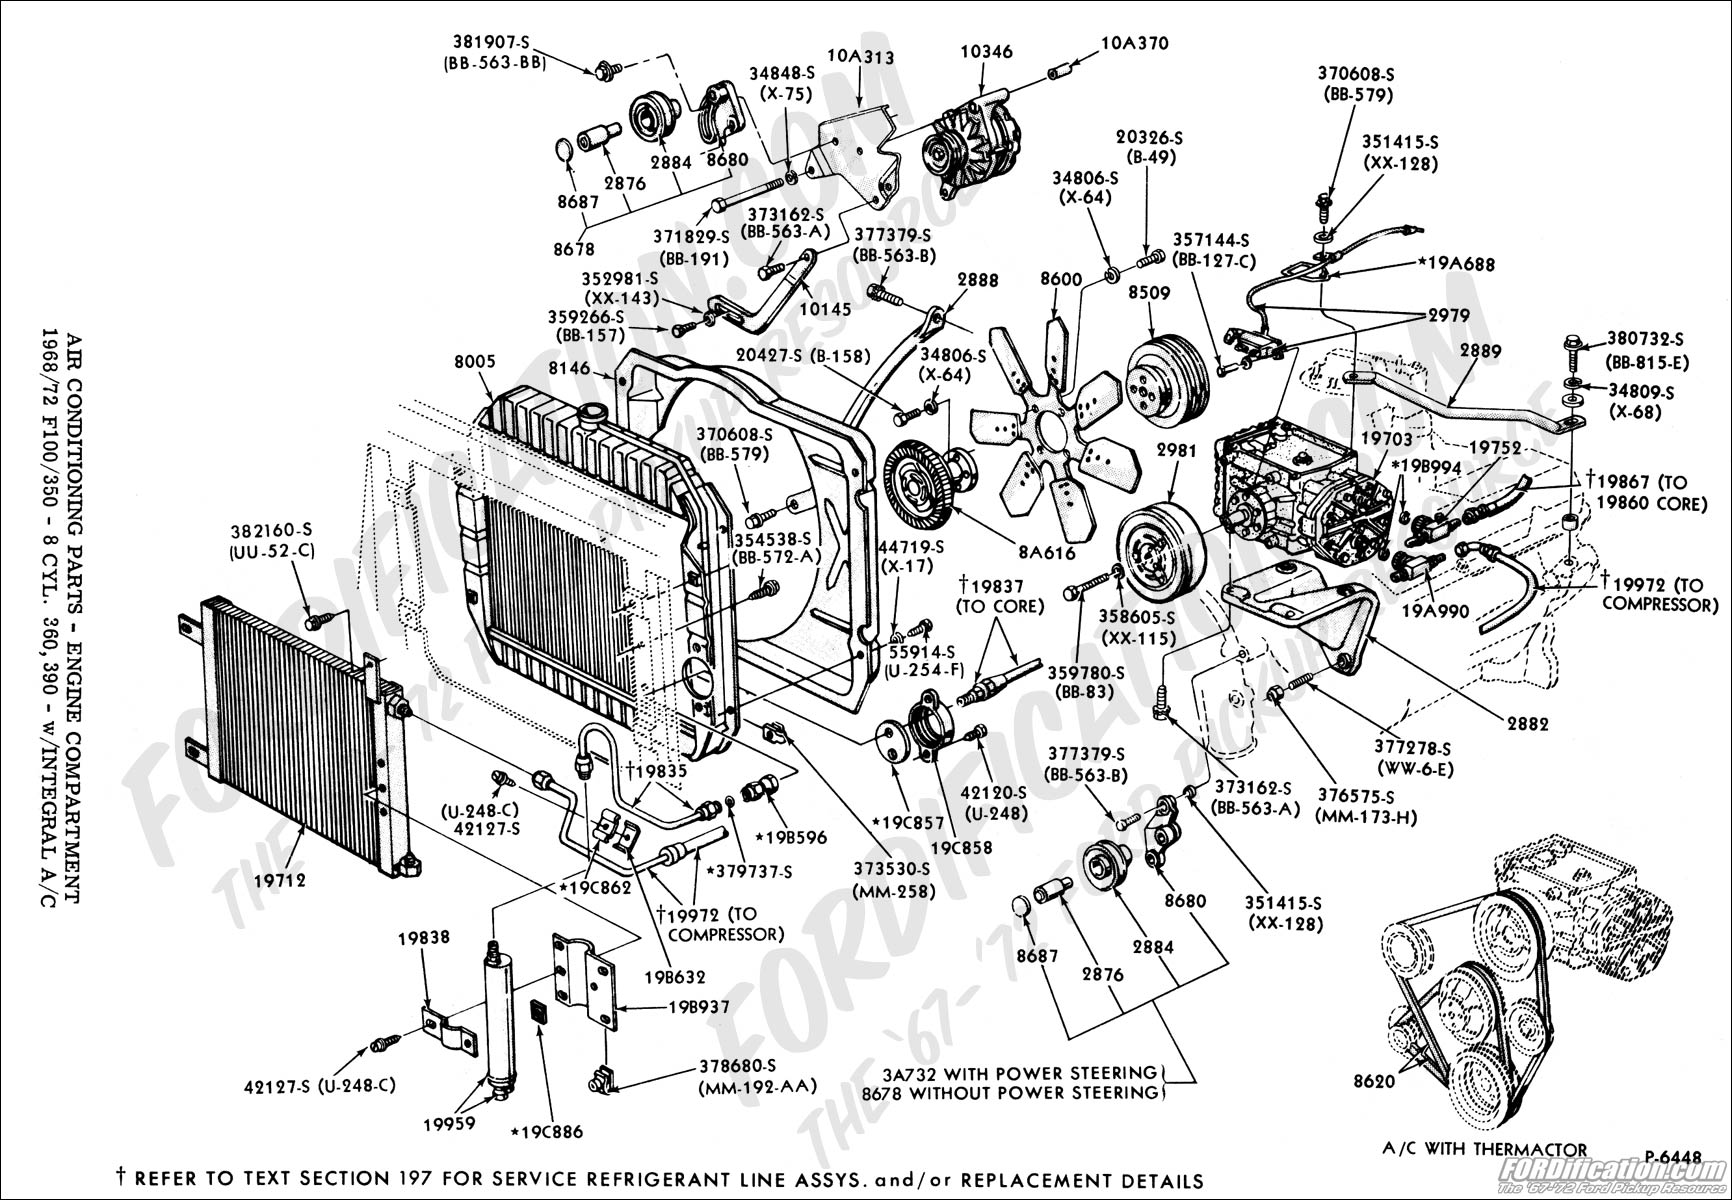 engine compartment diagram ford truck technical drawings and schematics - section f ... jaguar engine compartment diagram 01